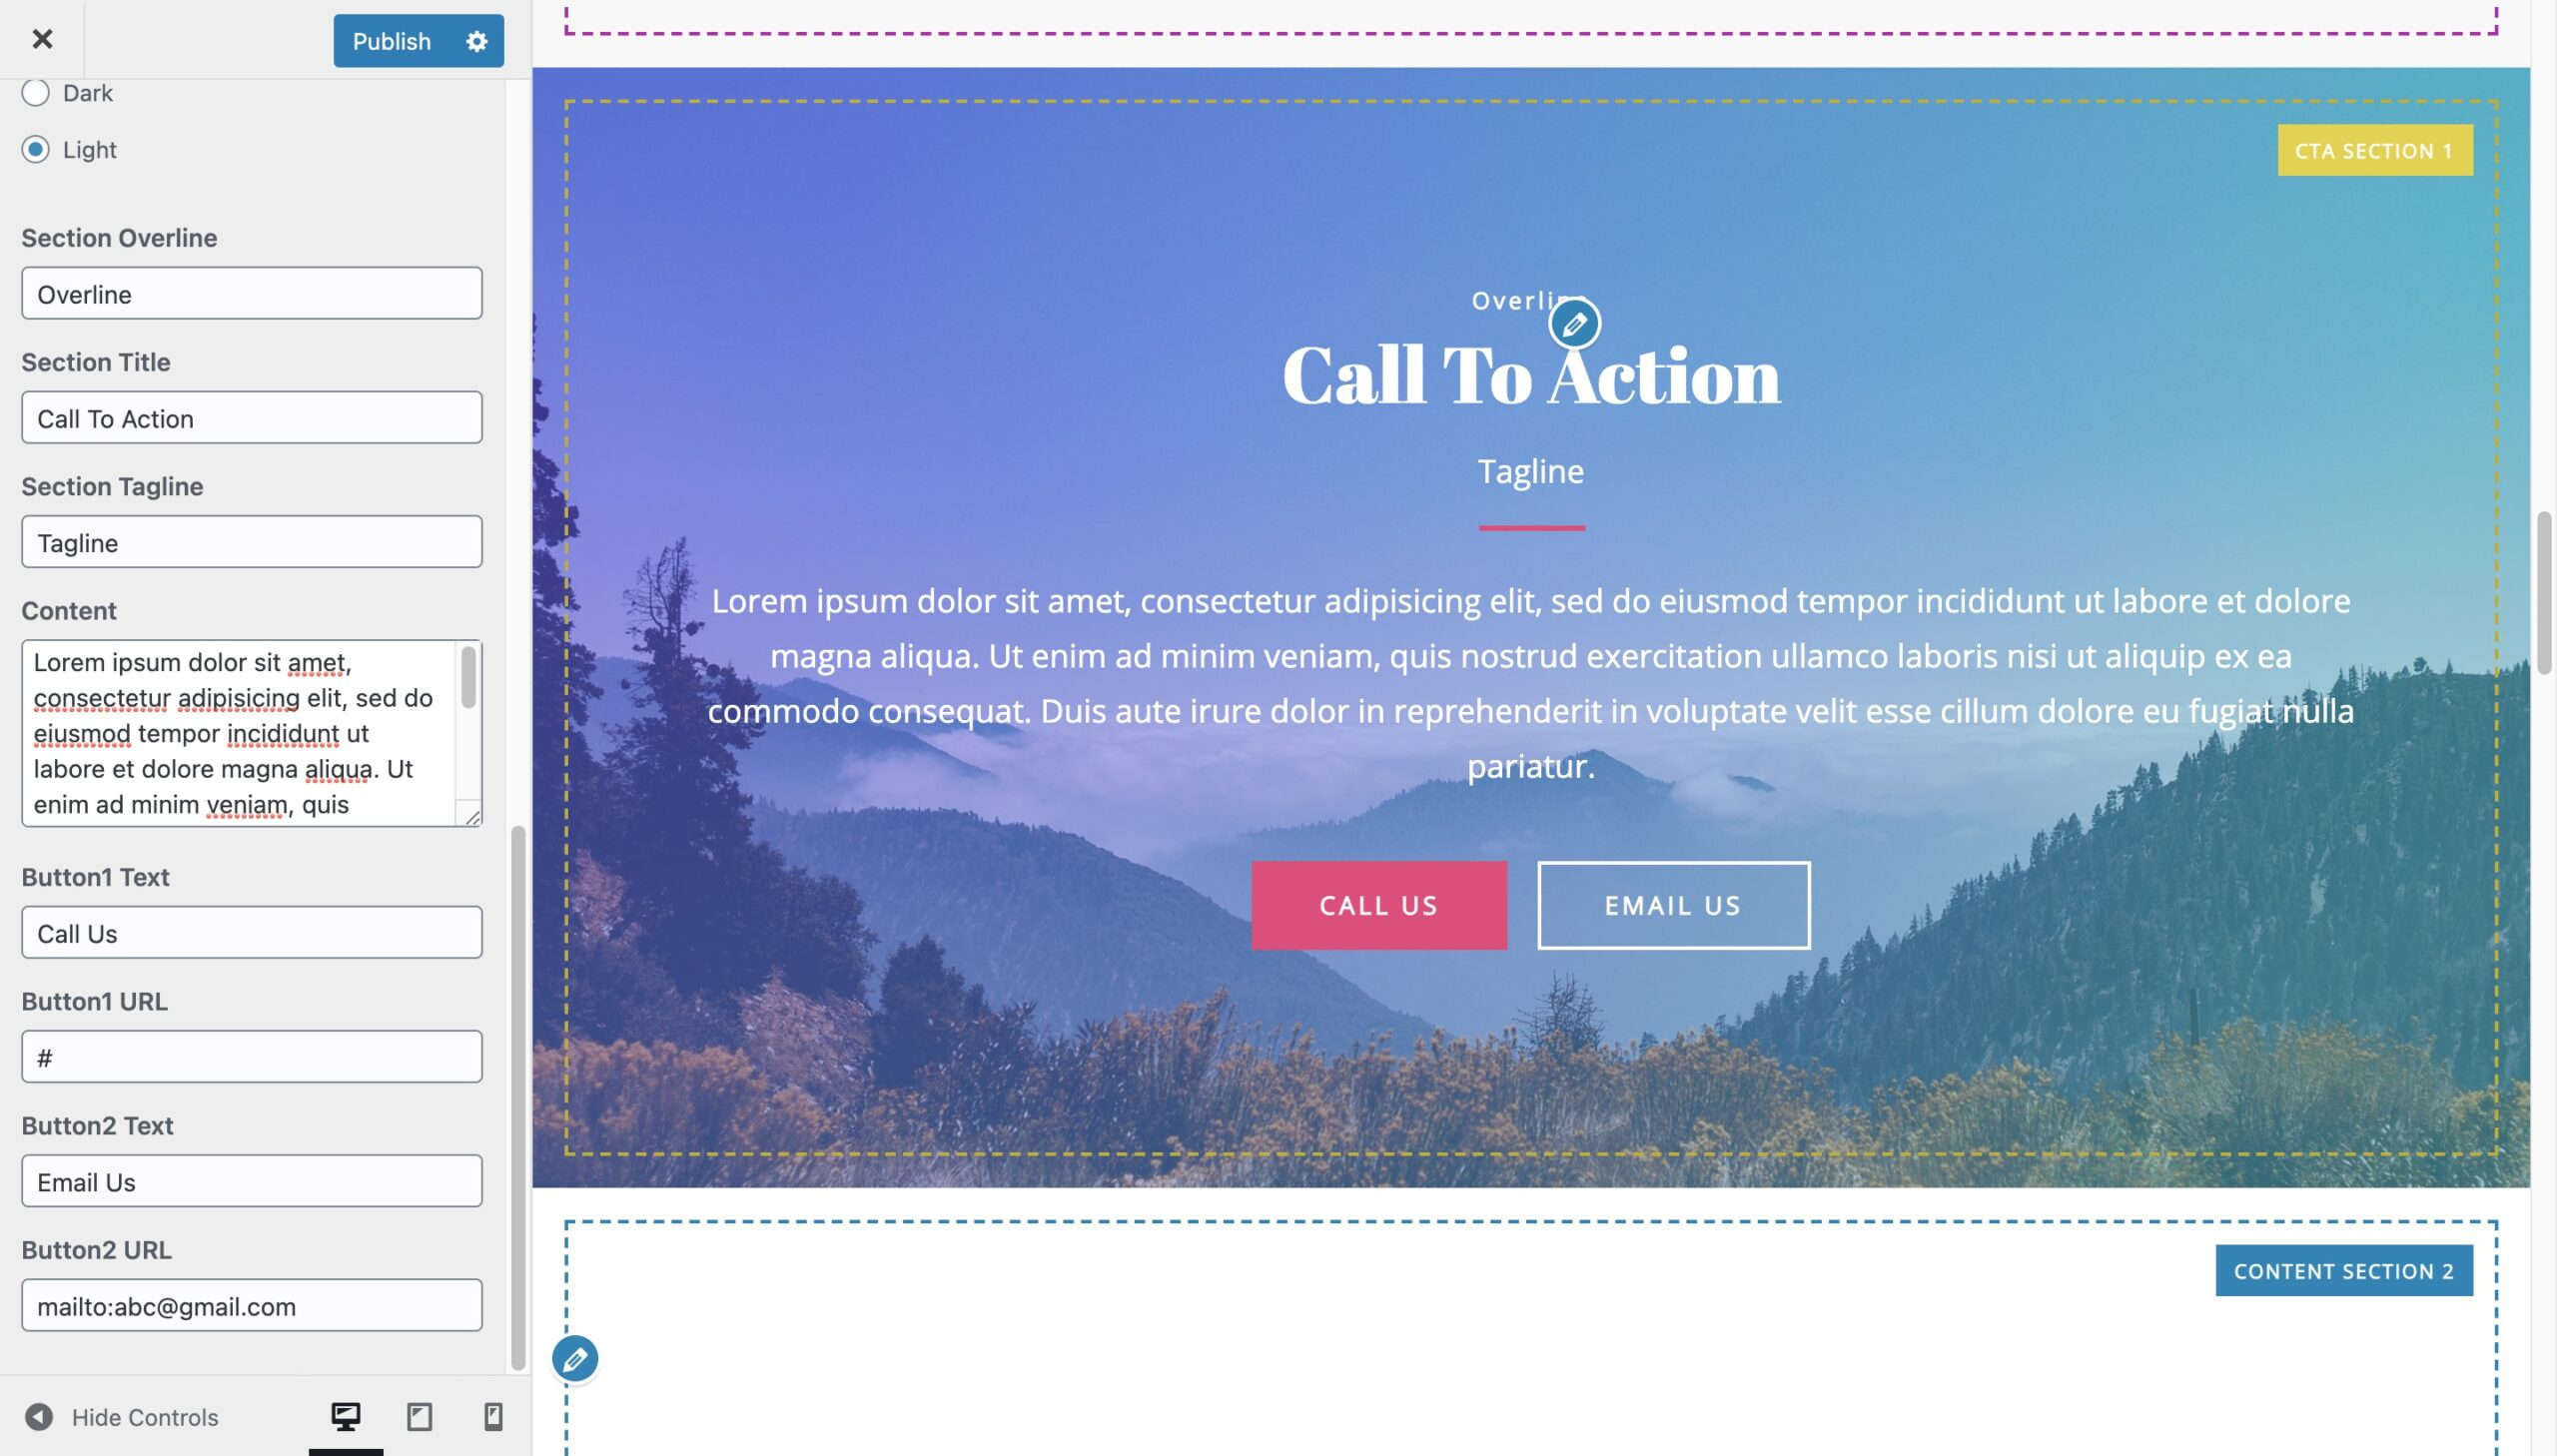 Call To Action-Image with Gradient Background